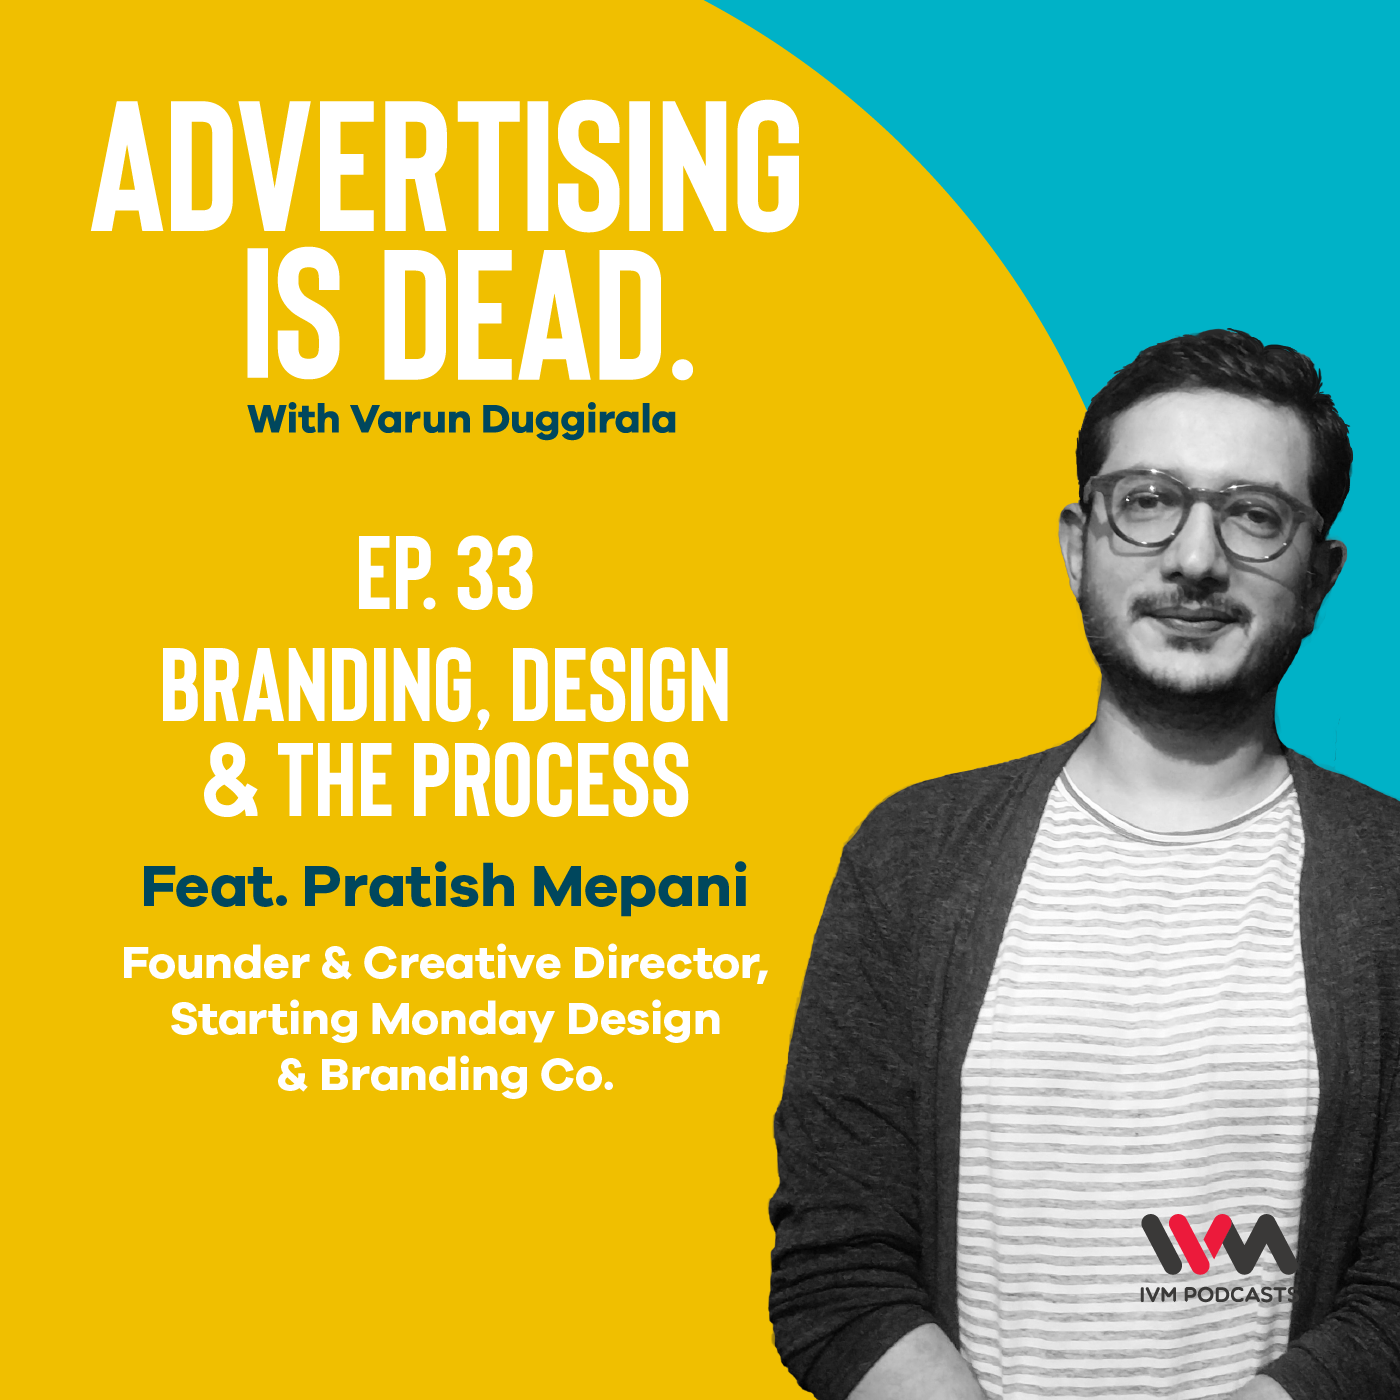 Ep. 33: Branding, Design & the Process